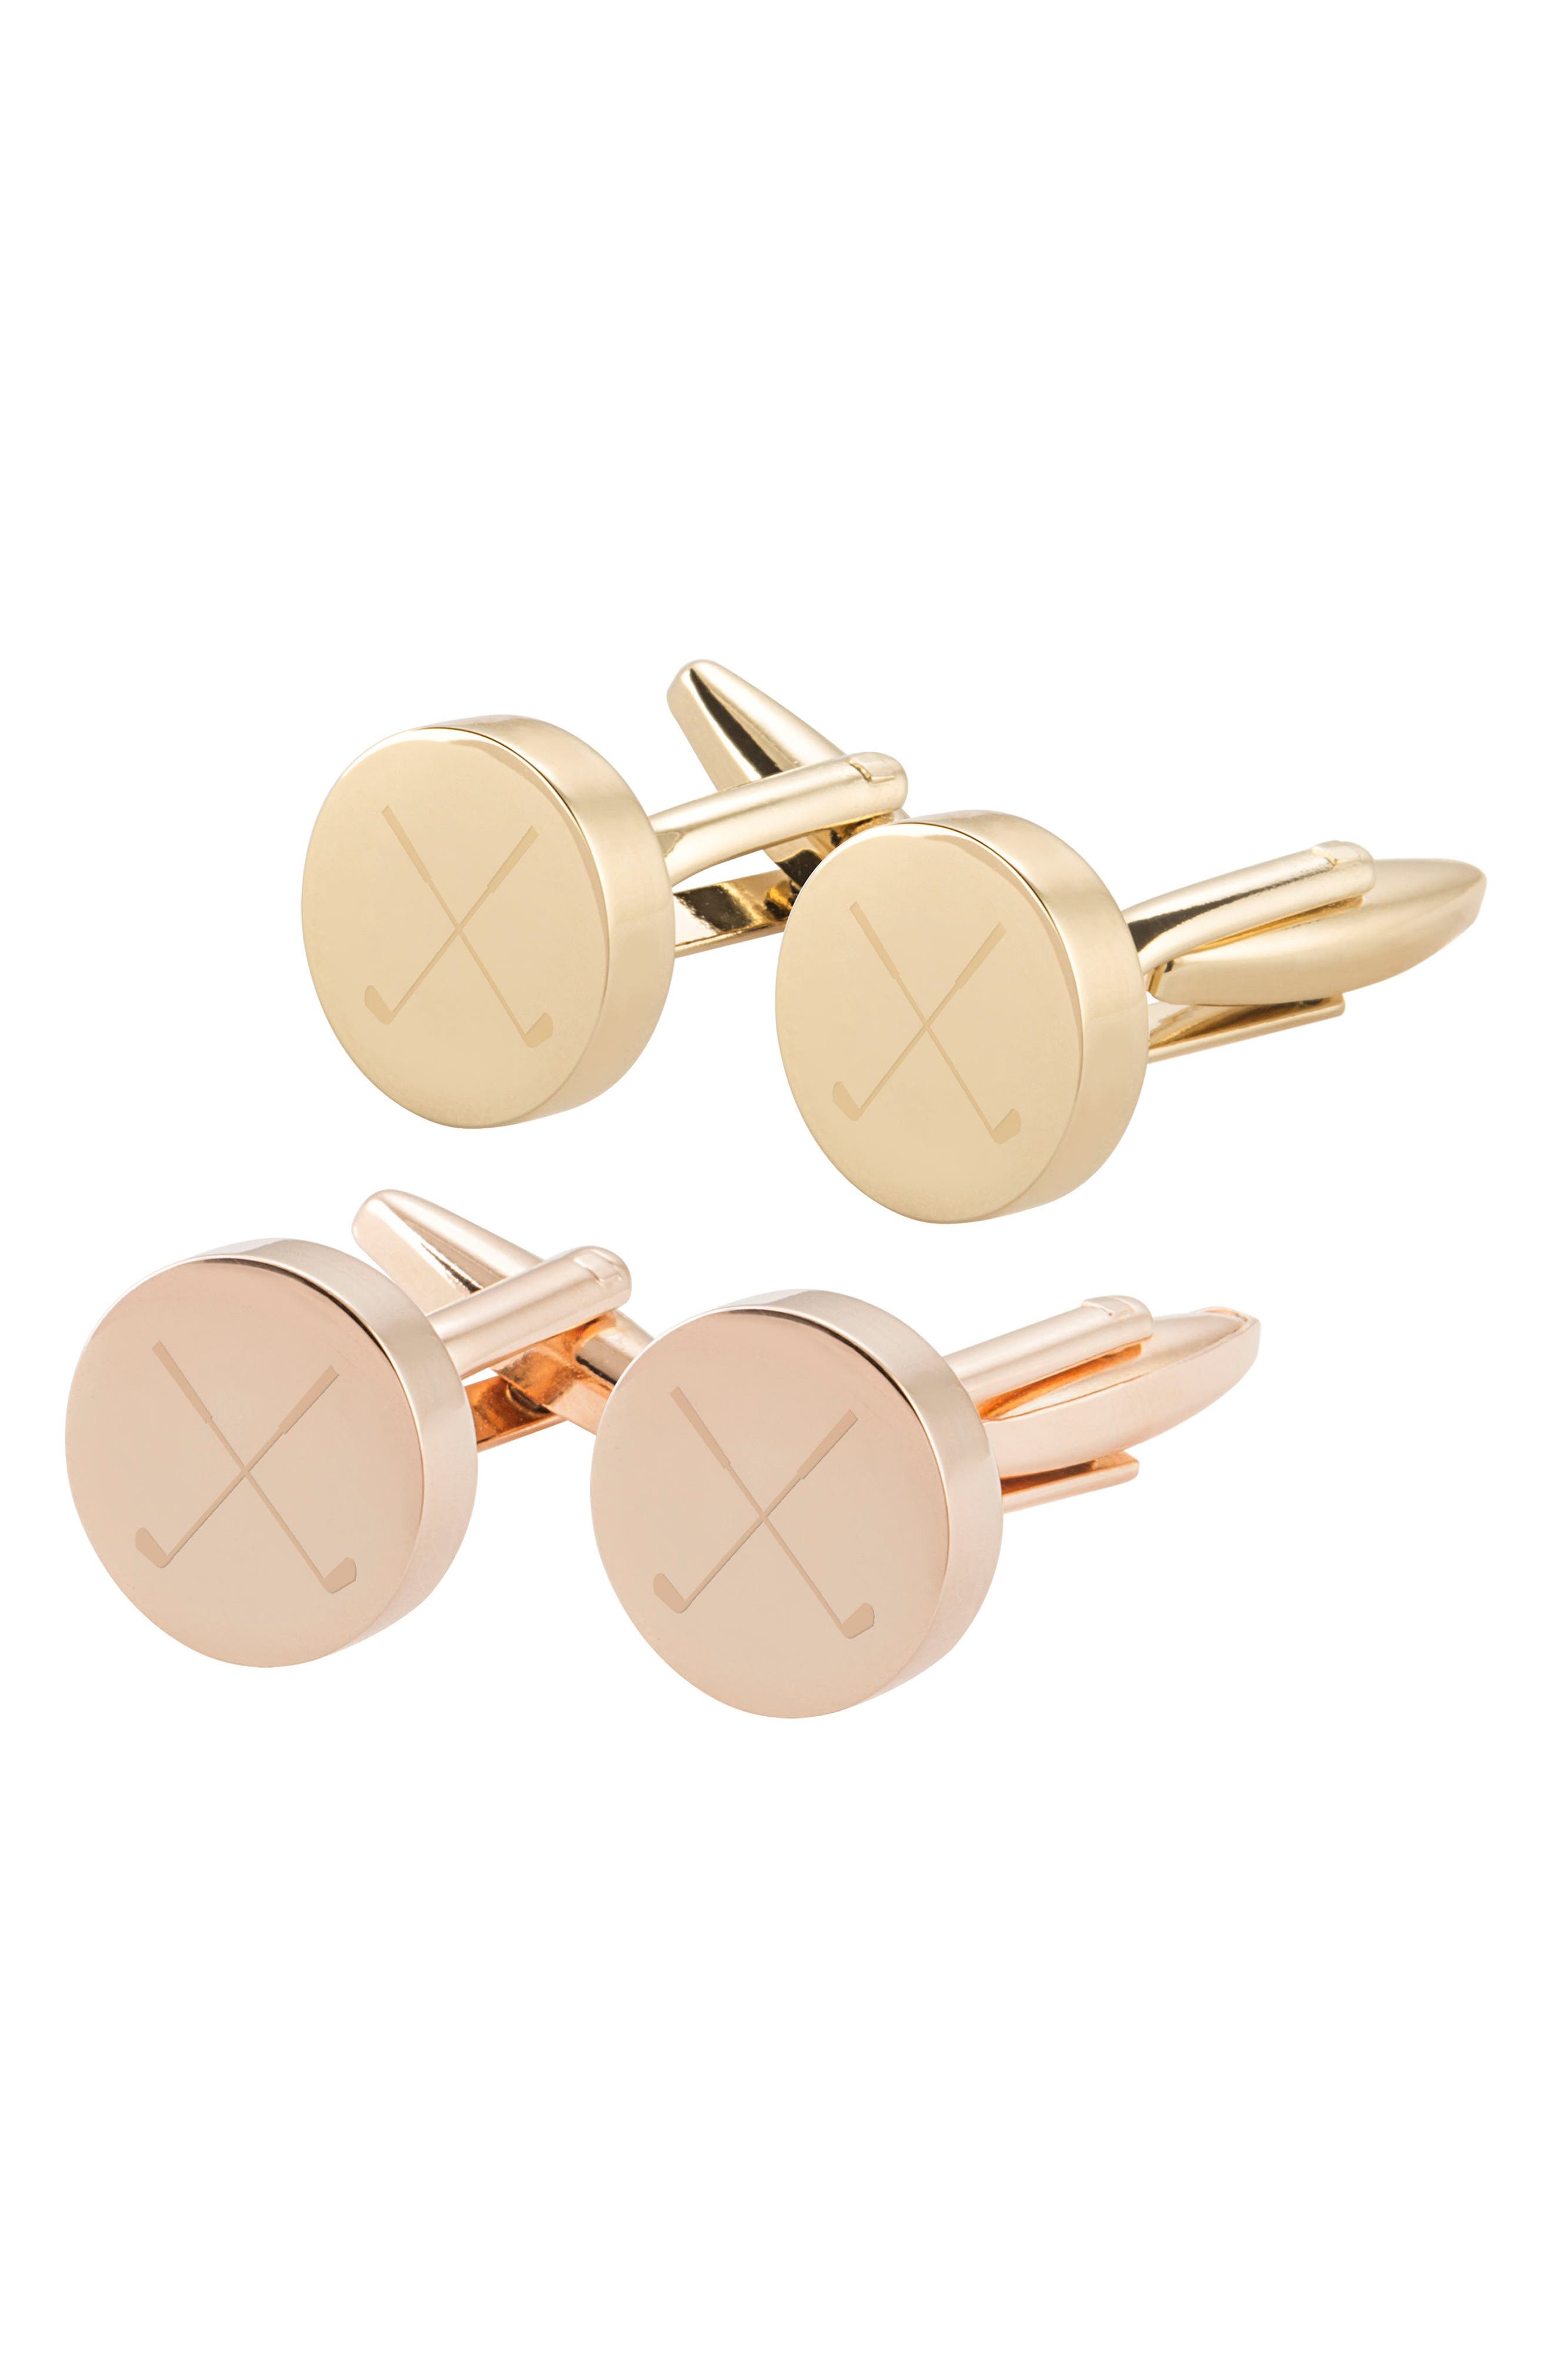 Golf Cuff Links,                             Alternate thumbnail 6, color,                             Rose Gold